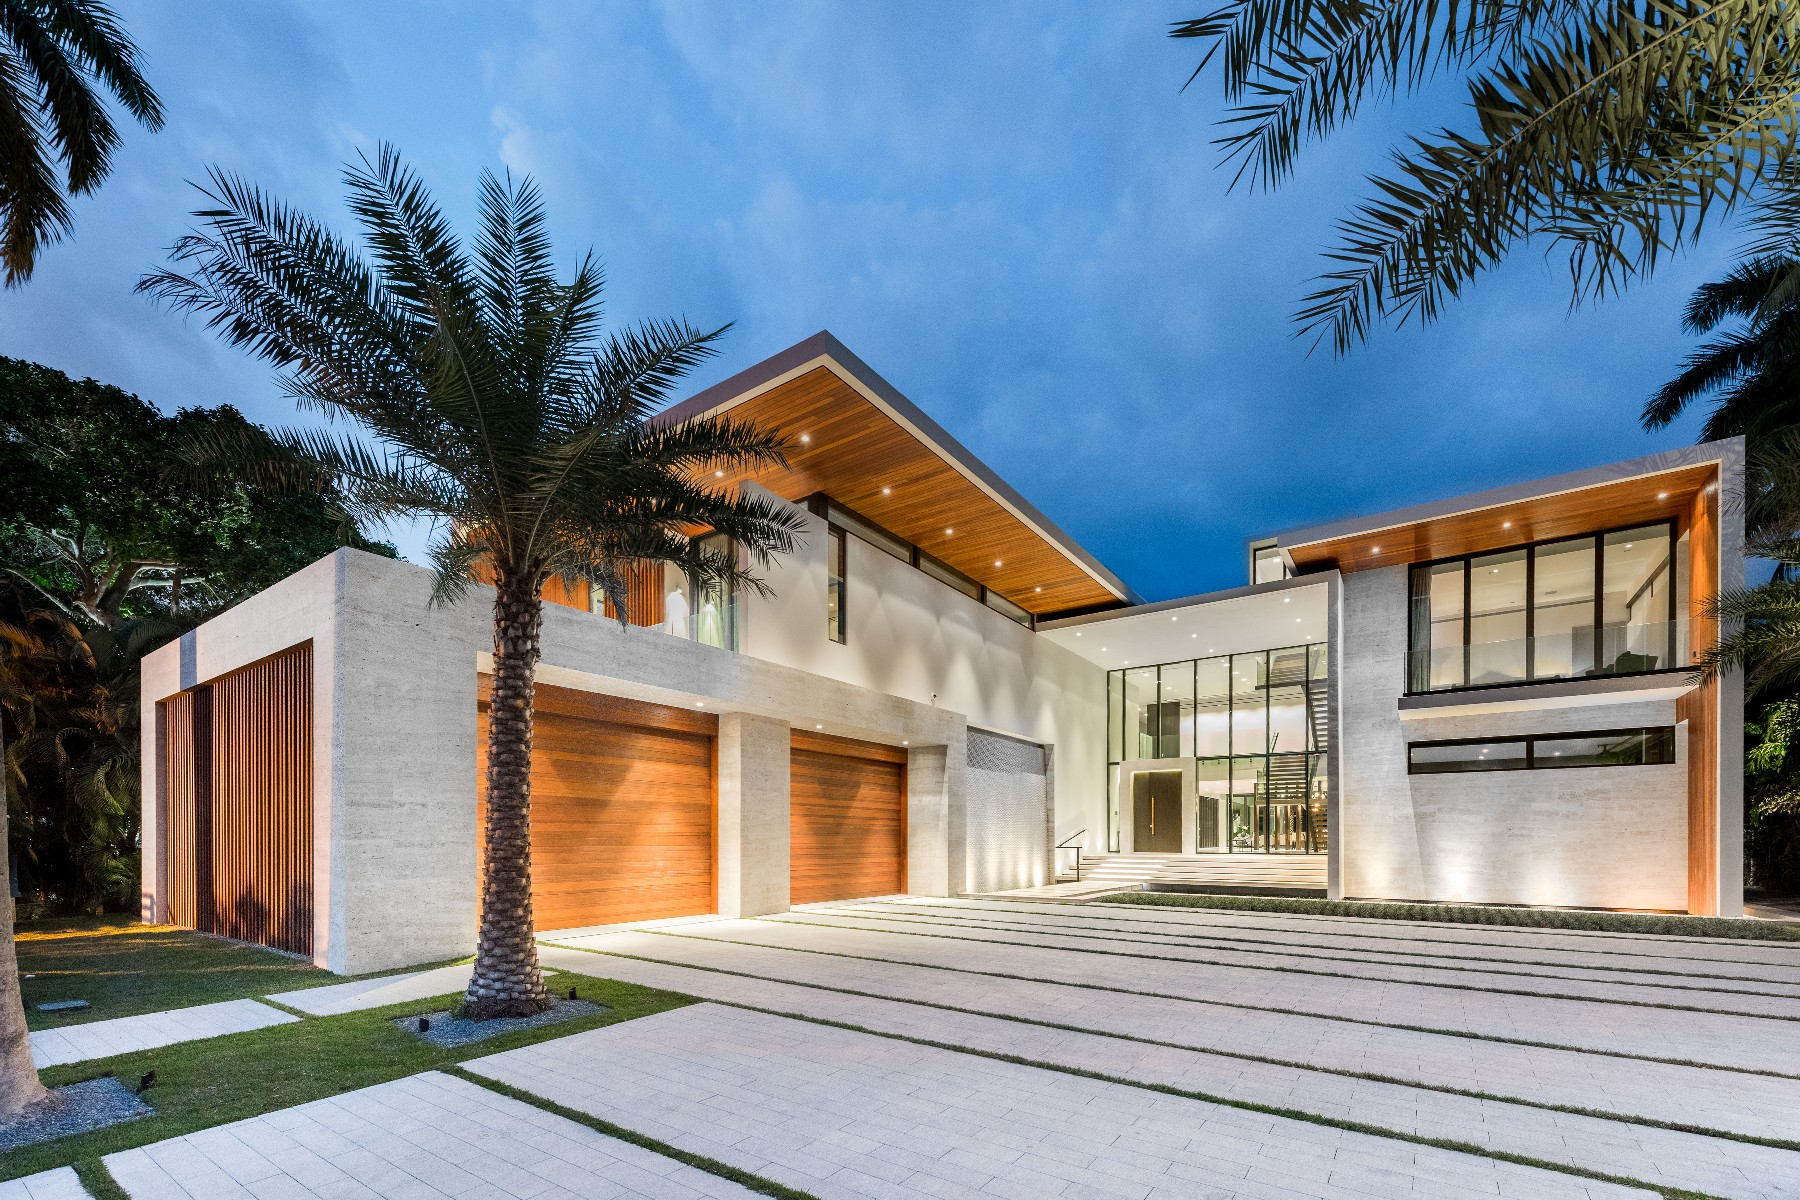 Single Family Home for Sale at 73 Palm Av Miami Beach, Florida 33139 United States